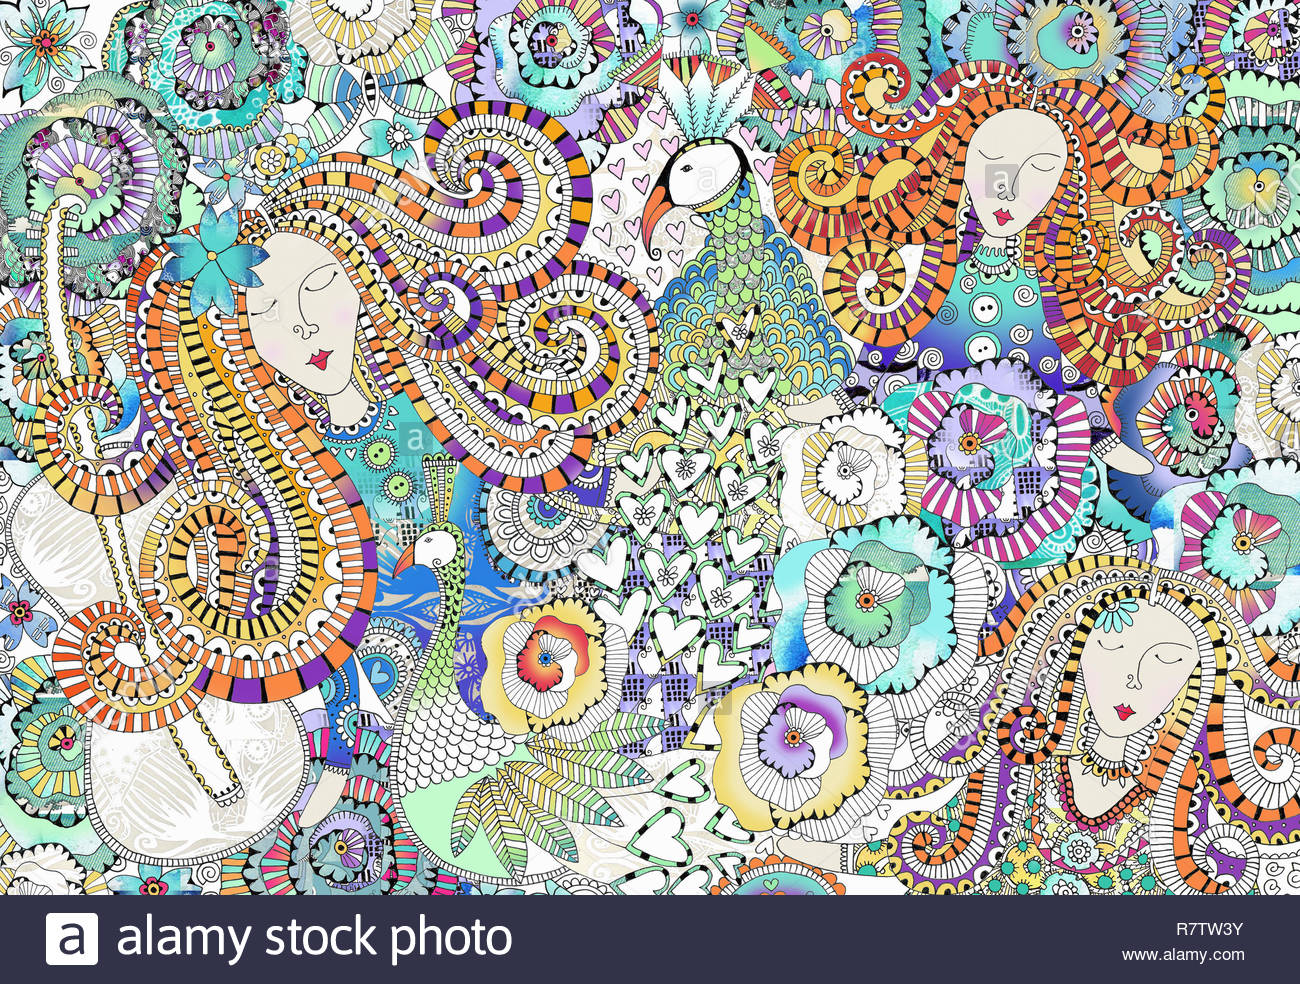 Women's faces, peacocks, hearts and flowers in intricate ornate pattern Stock Photo